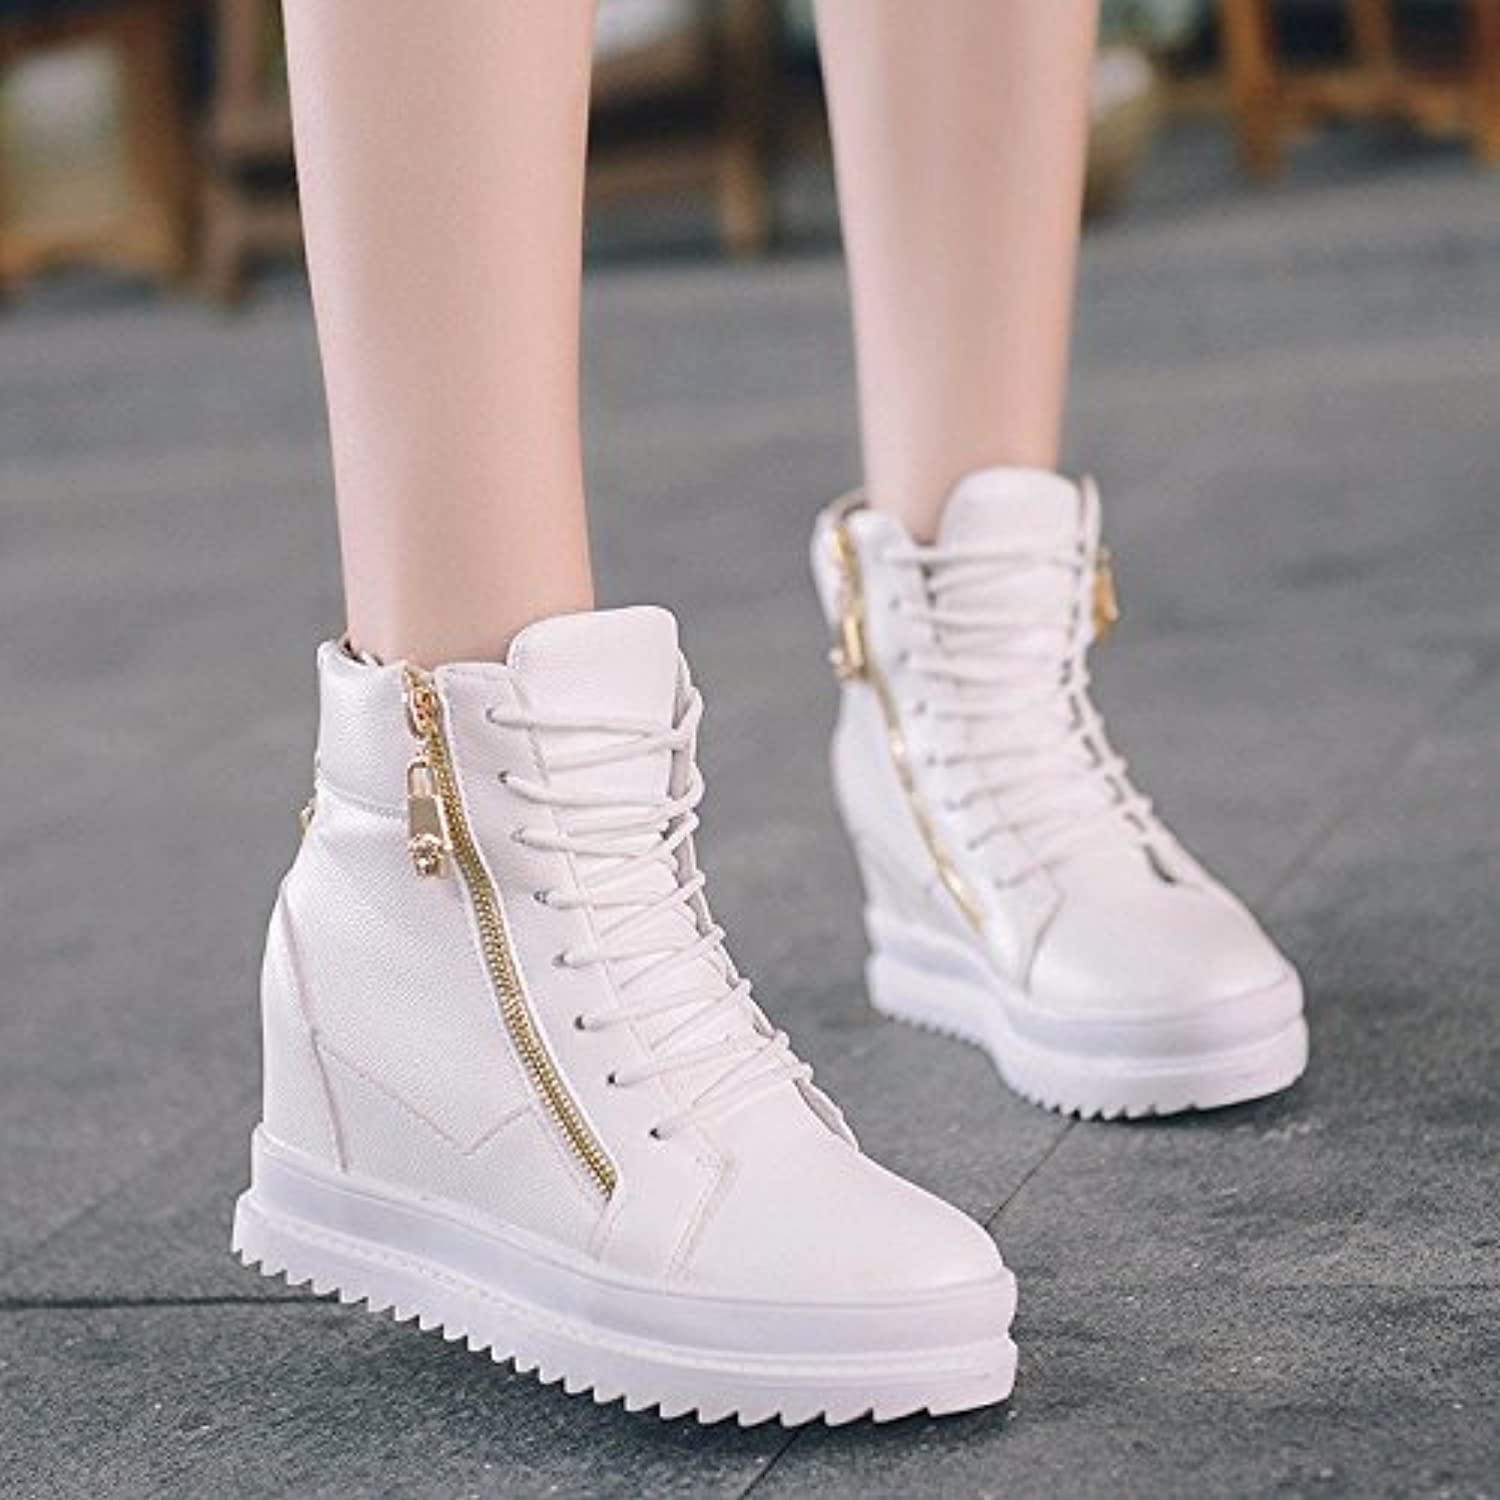 WYMBS Women's shoes Female Boots Autumn Winter Increased Within Mid Heel Slope with High Help Tie Casual shoes,White,39